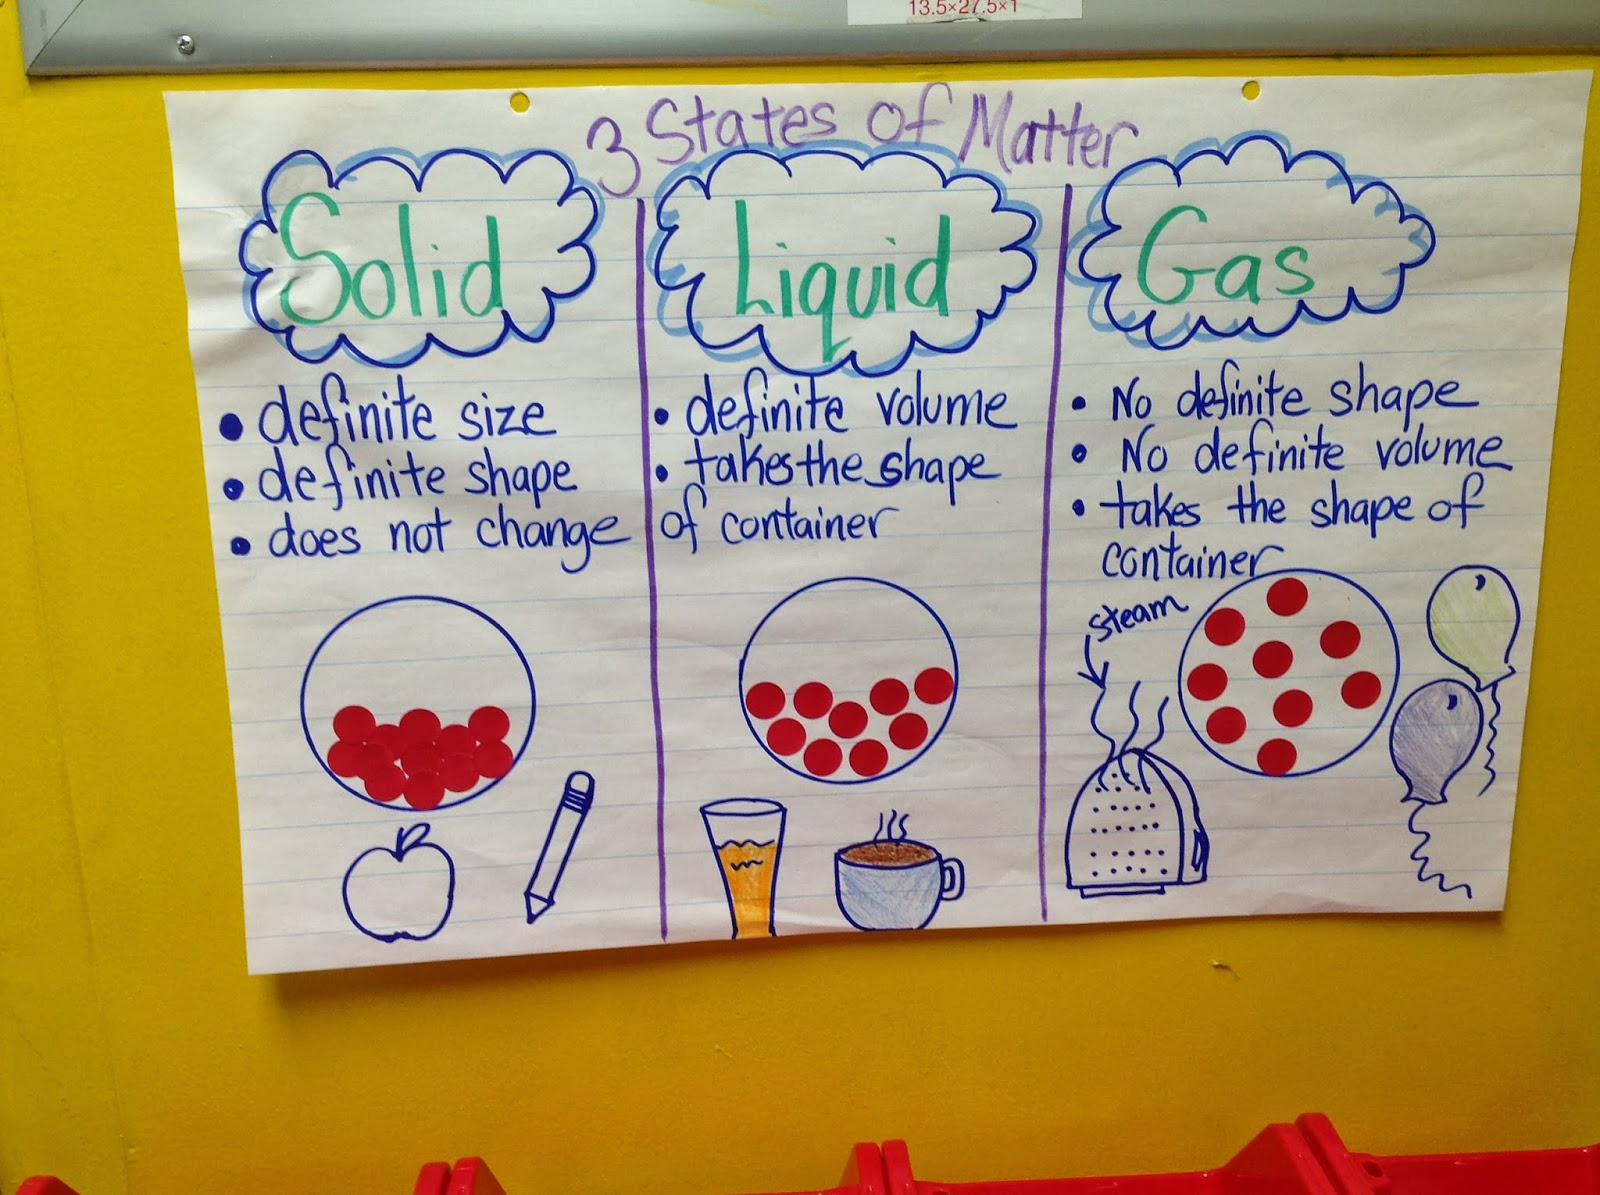 Solids Liquids And Gases Videos For Kids